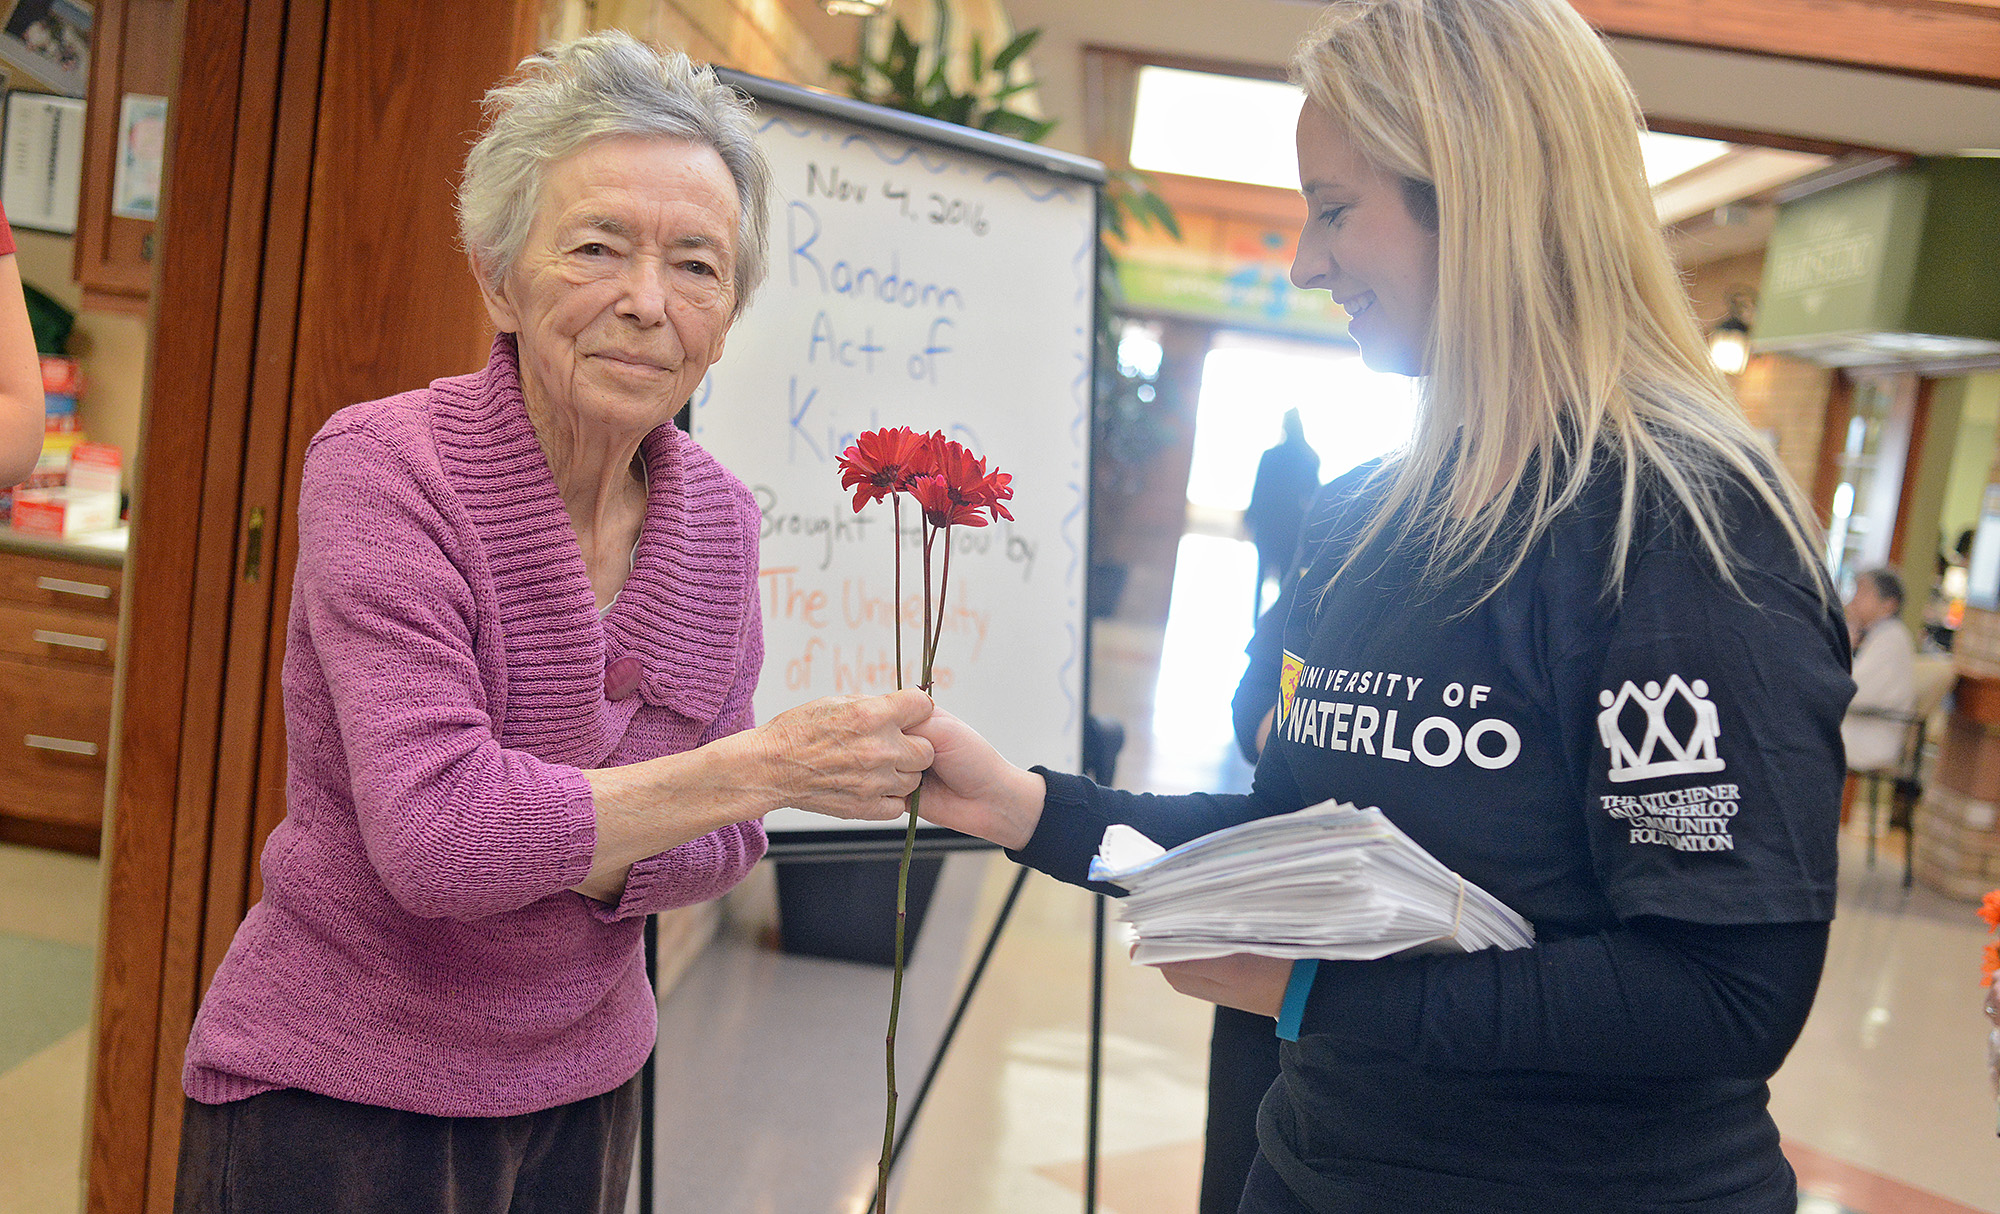 Students sharing flowers with elderly